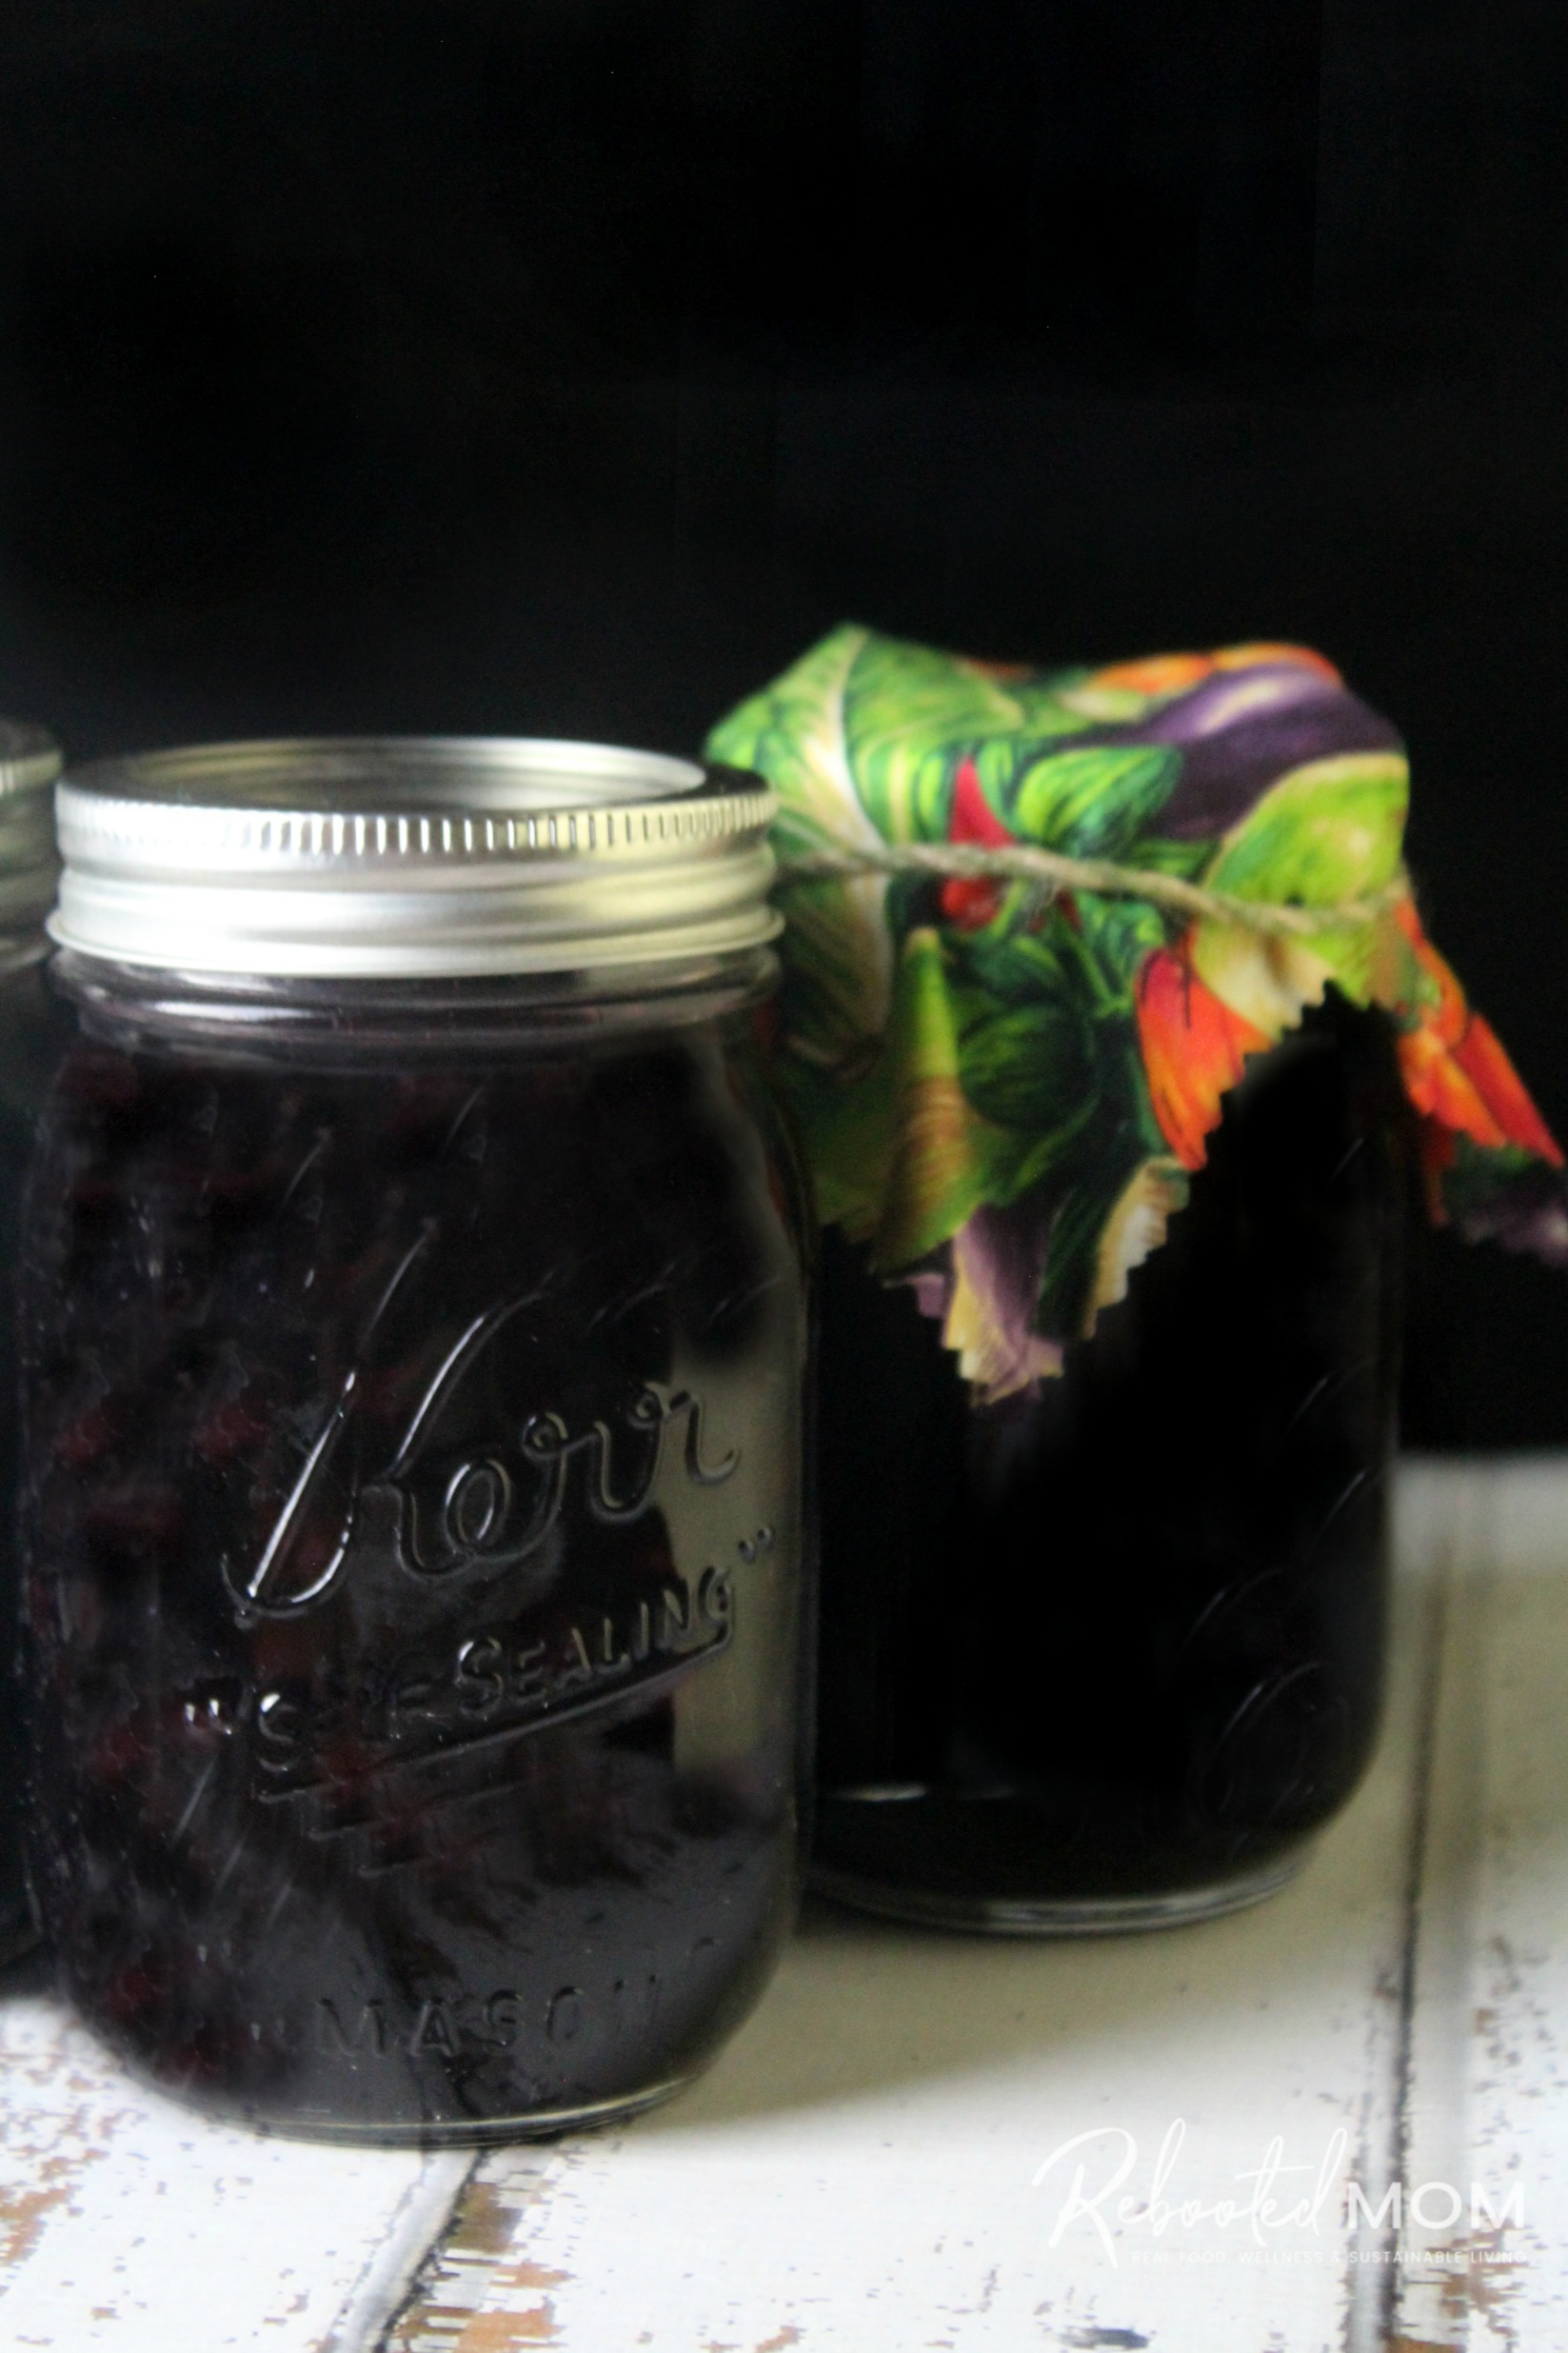 Pickled Blueberries in a pint canning jar